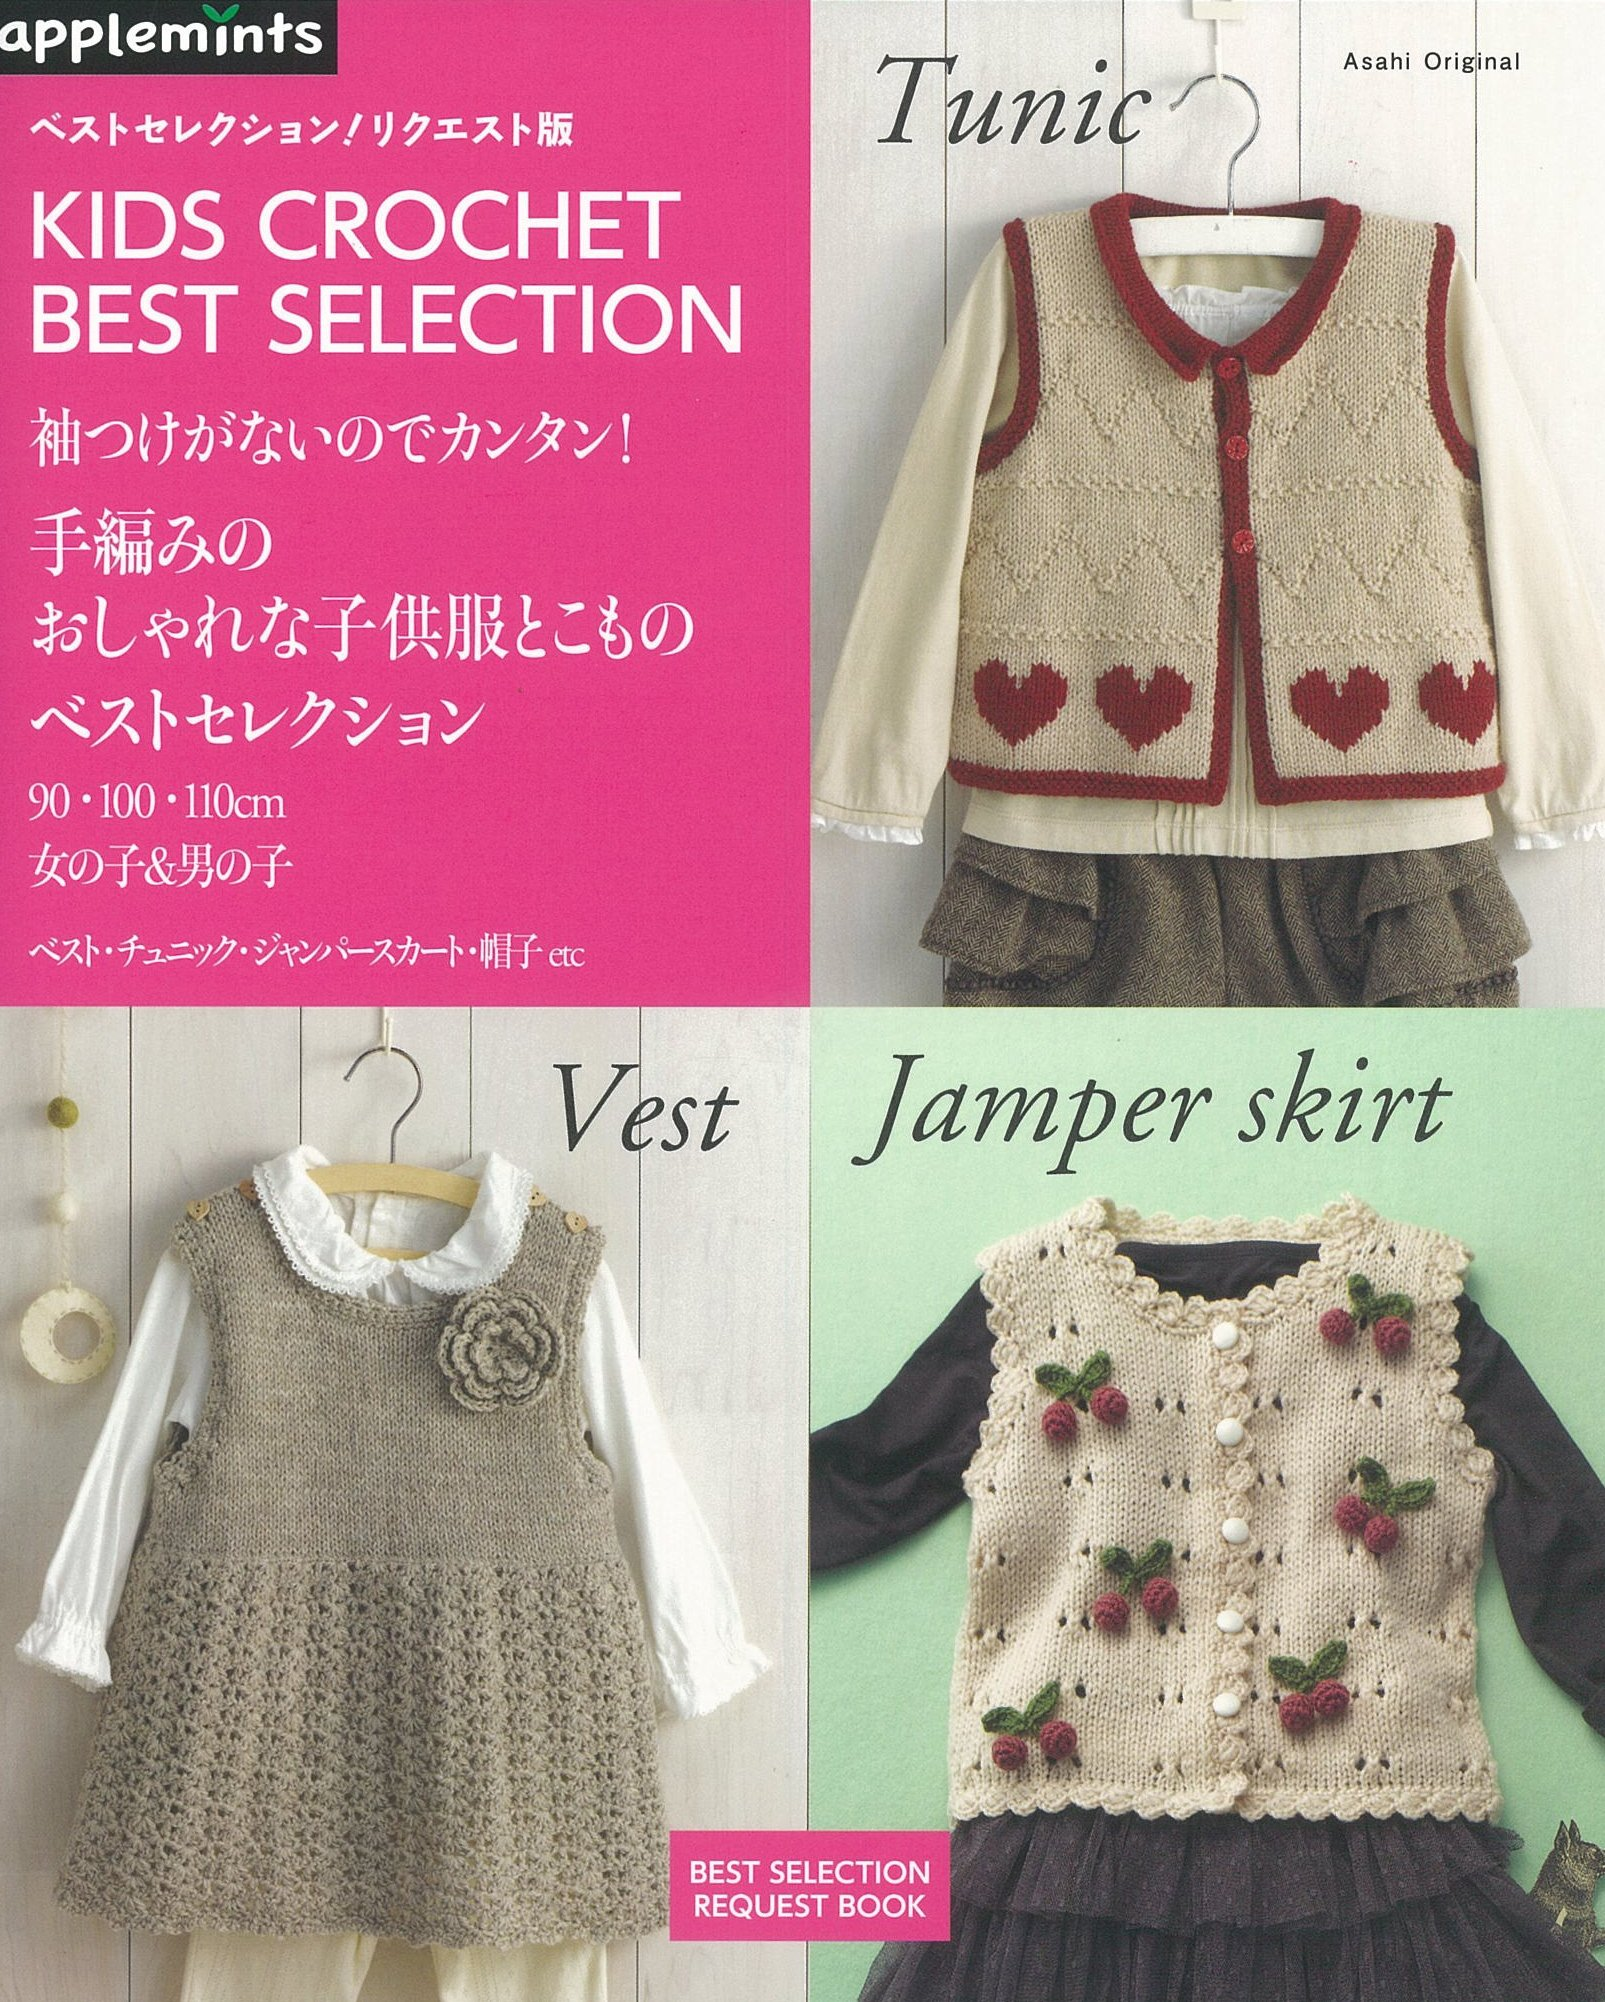 Best Selection! Fashionable childrens clothing Toko of hand-knitted 90 · 100 · 110cm Girl & boy